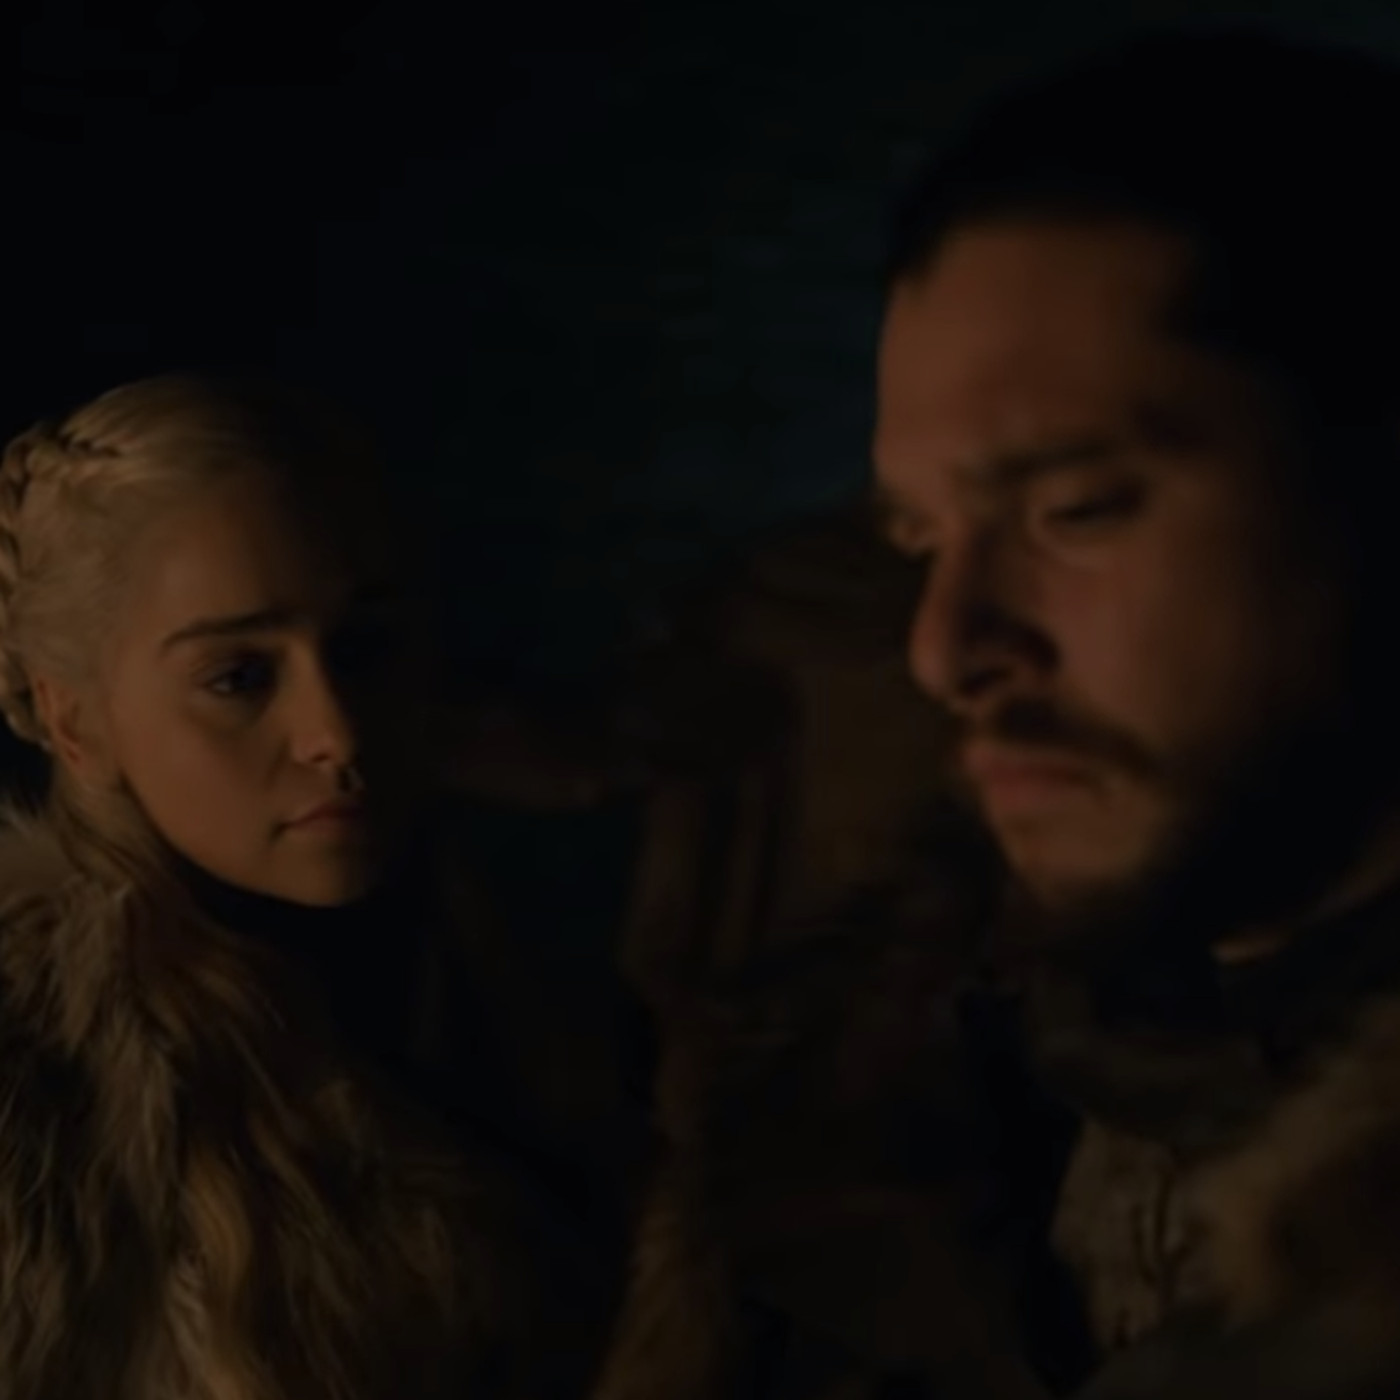 Game of Thrones' full season 8 trailer shows dragons and